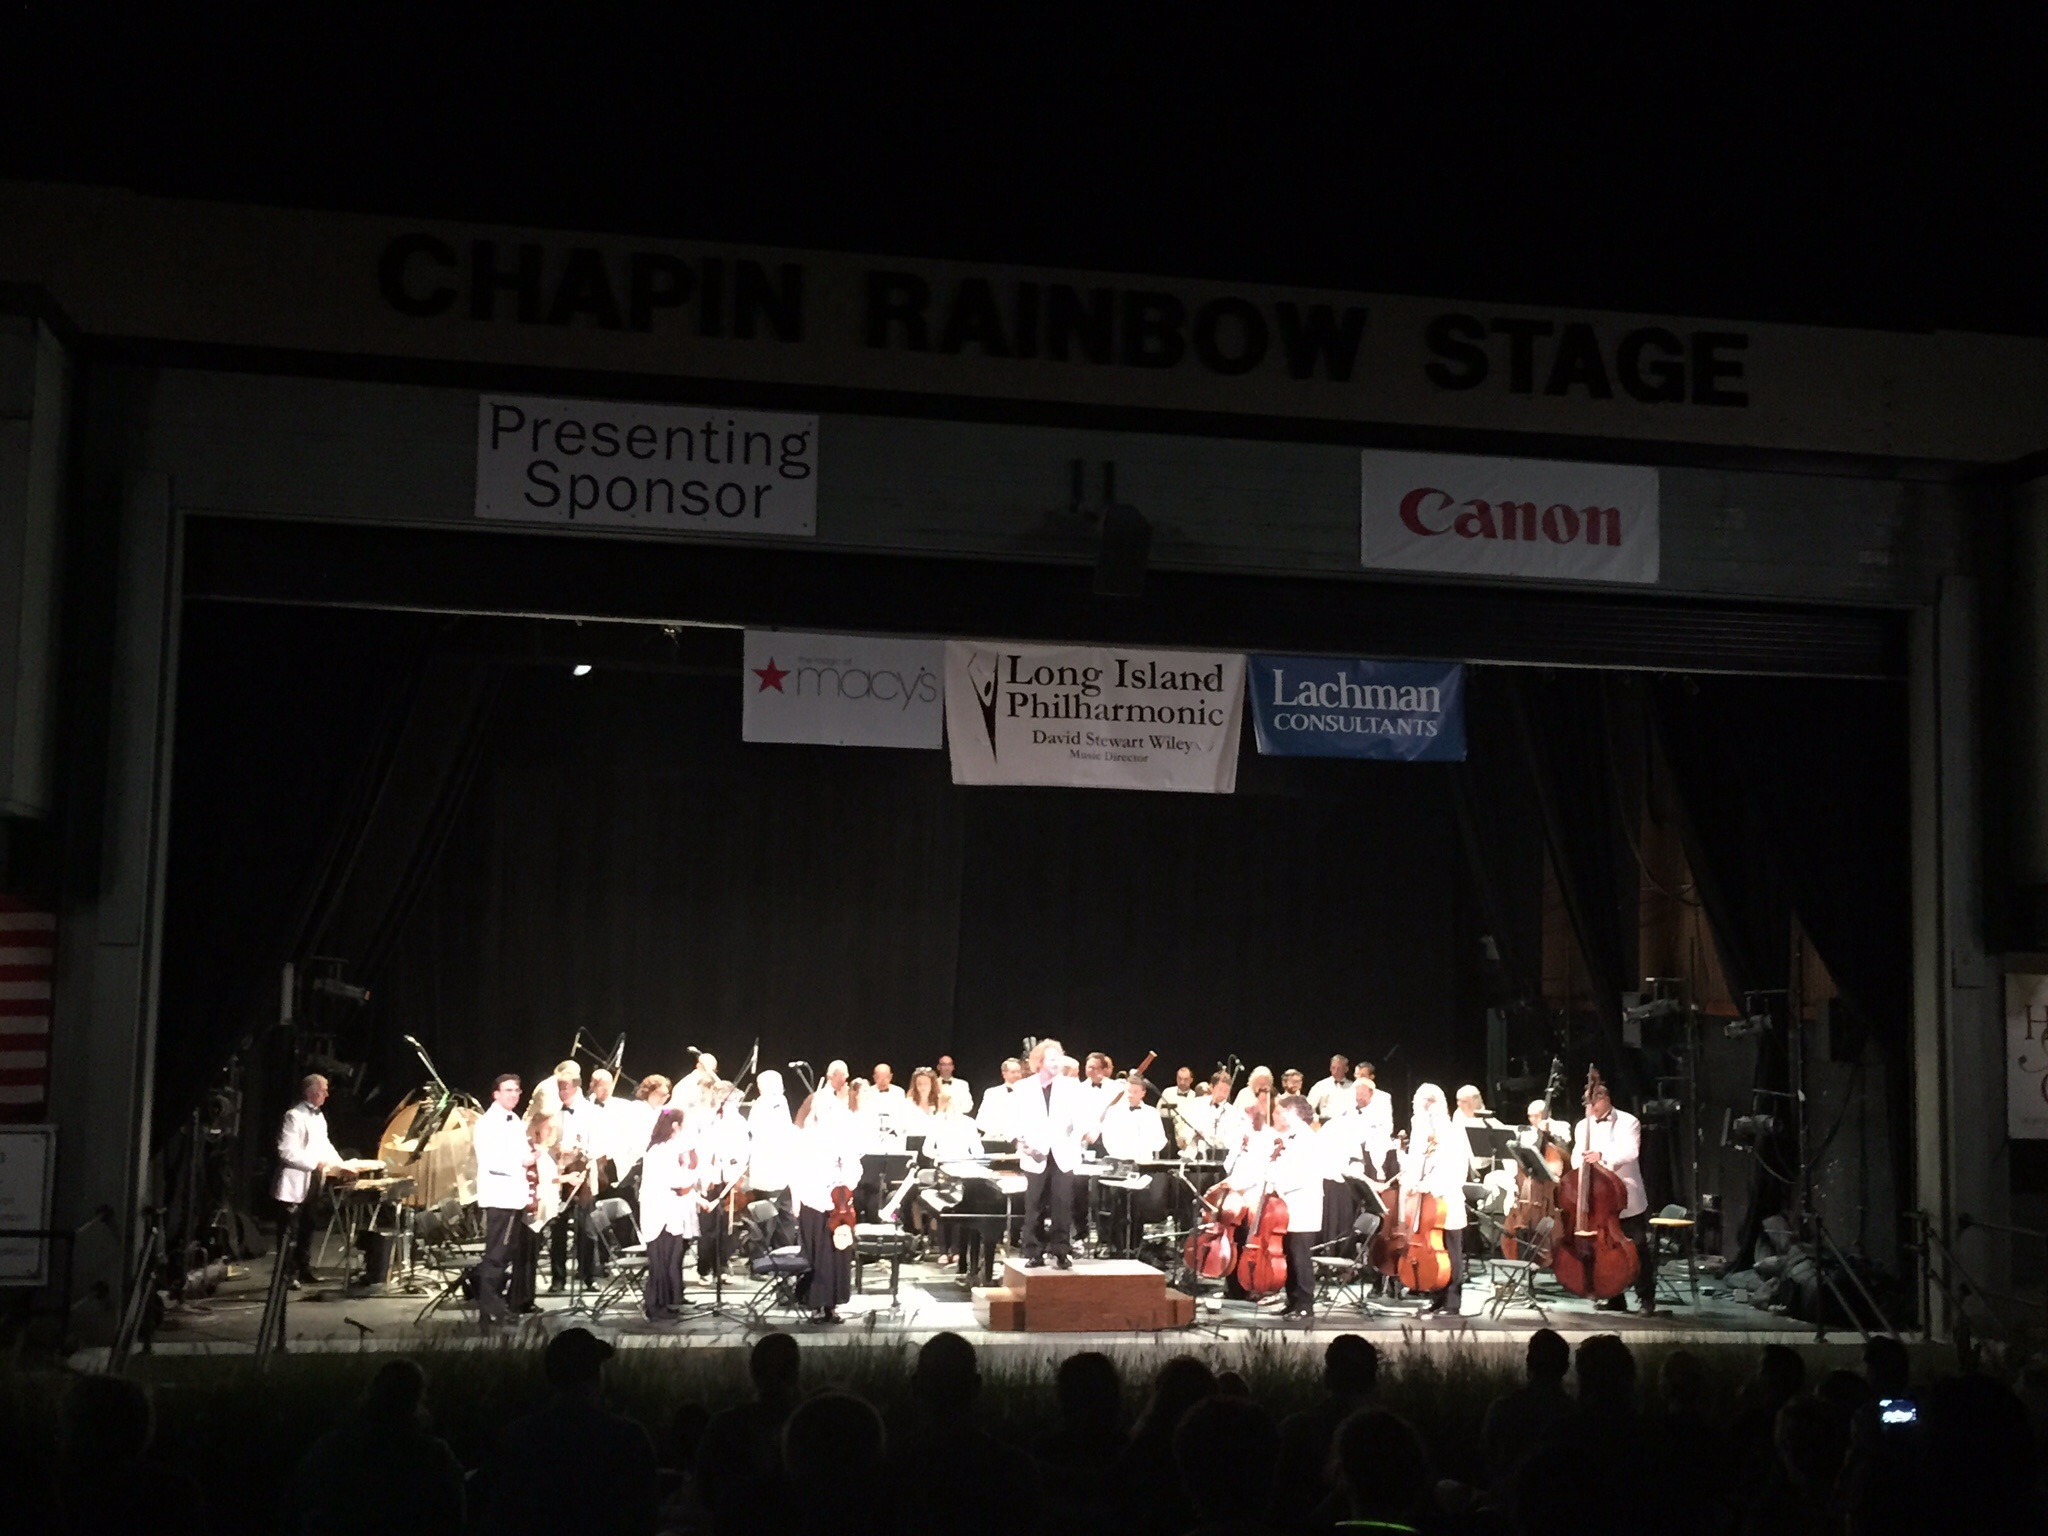 The Long Island Philharmonic at Heckscher Park